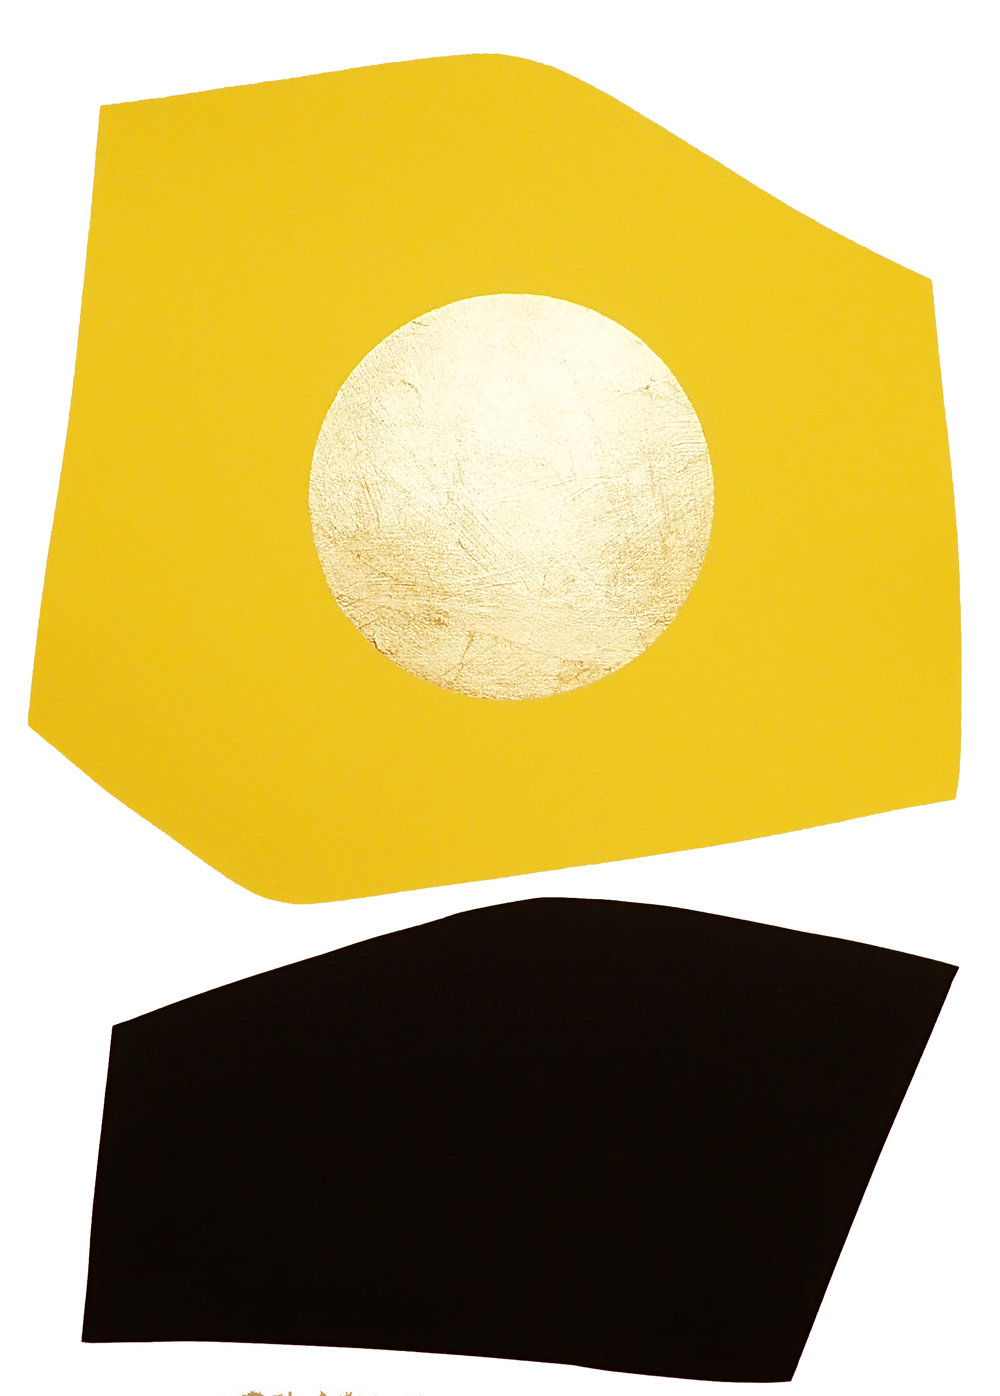 Yellow and Black Block with Gold Circle